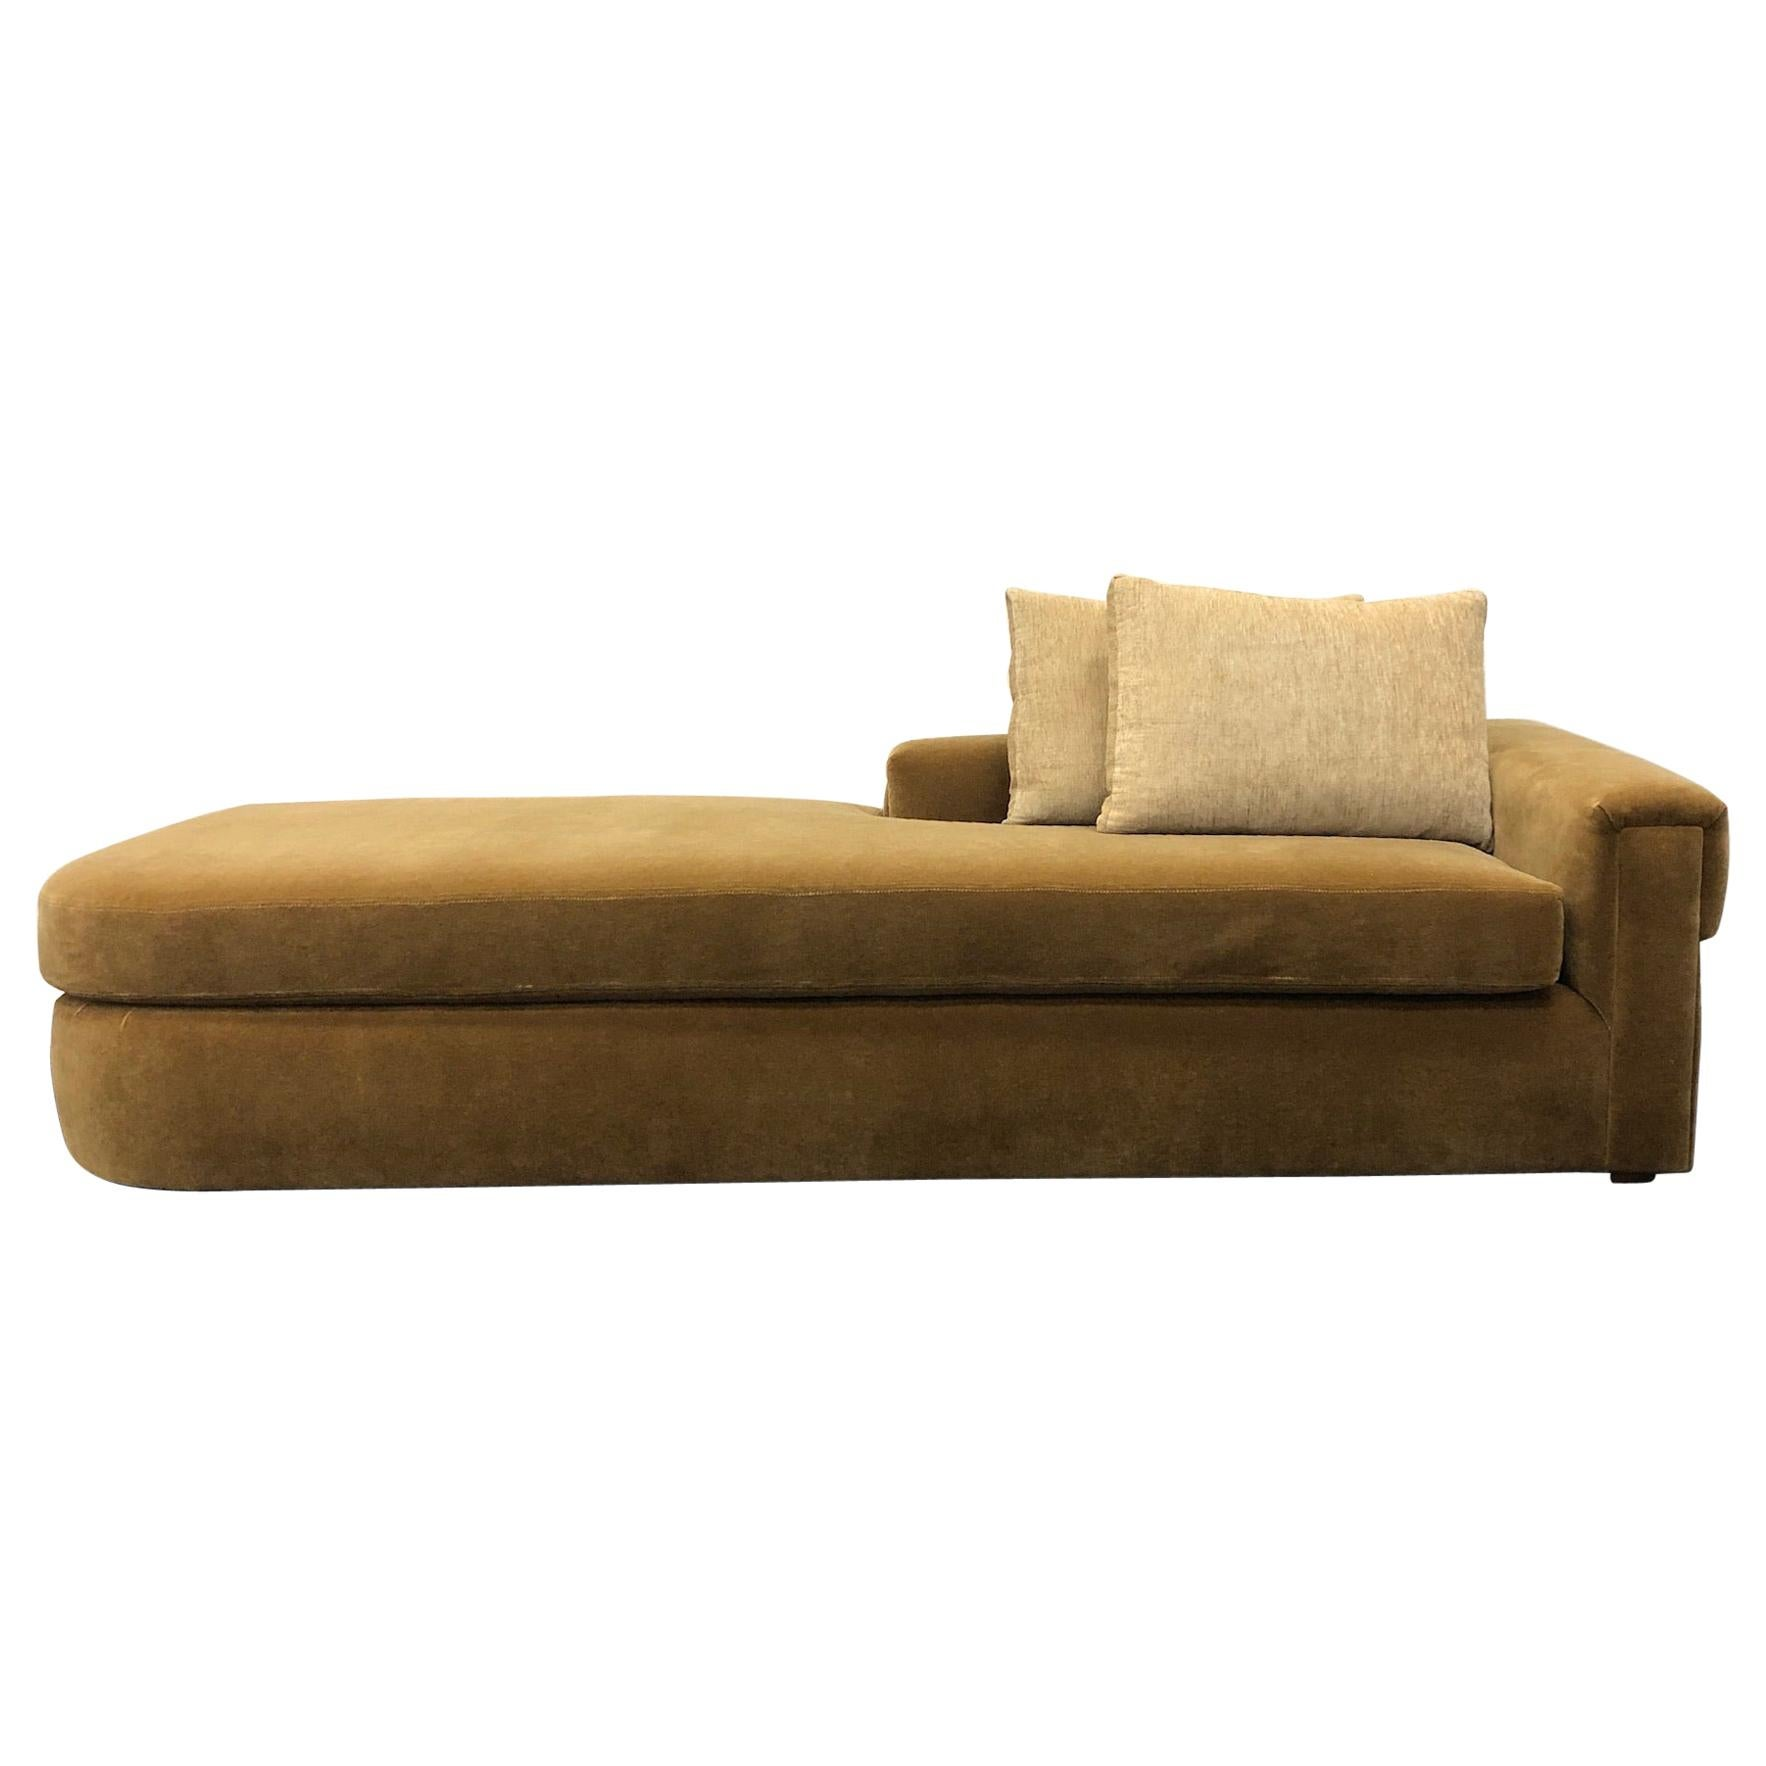 Gold Mohair Chaise by Steve Chase